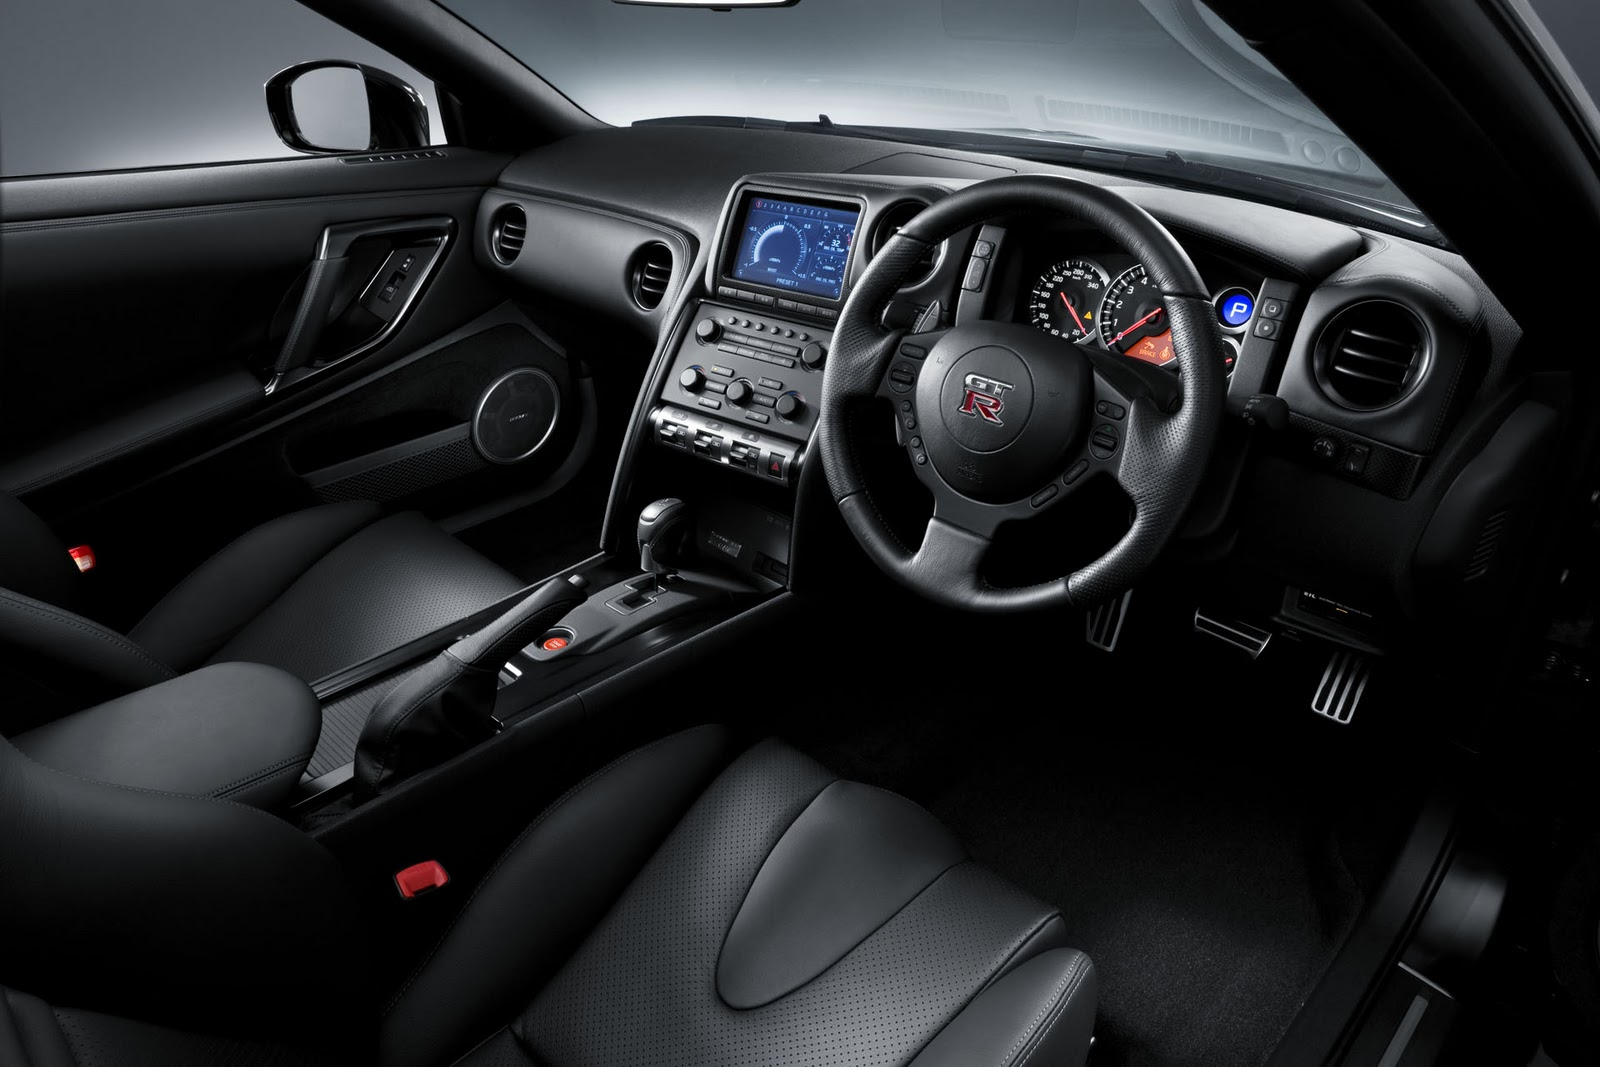 Nissan gt r spec v interior images bollywood hd most for Nissan gtr interieur